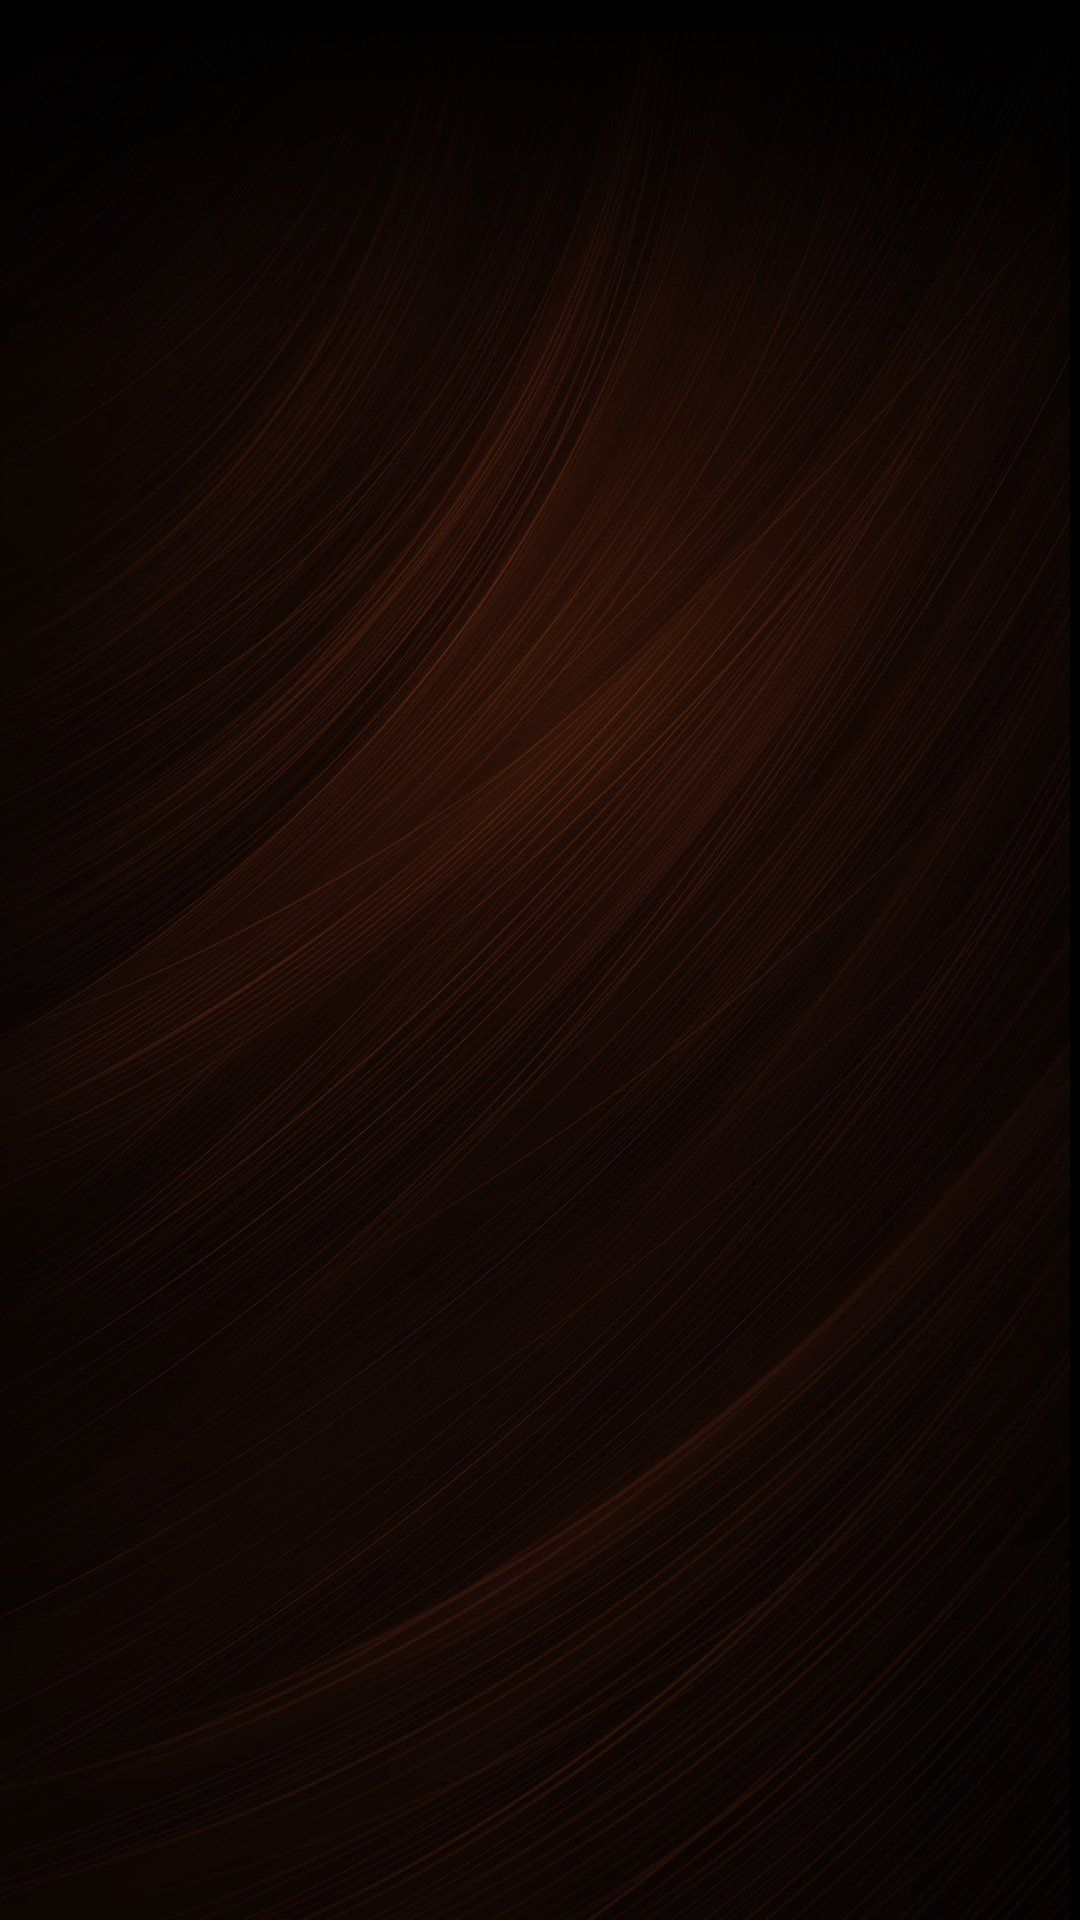 Dark Abstract Iphone Wallpapers In 2019 Abstract Iphone